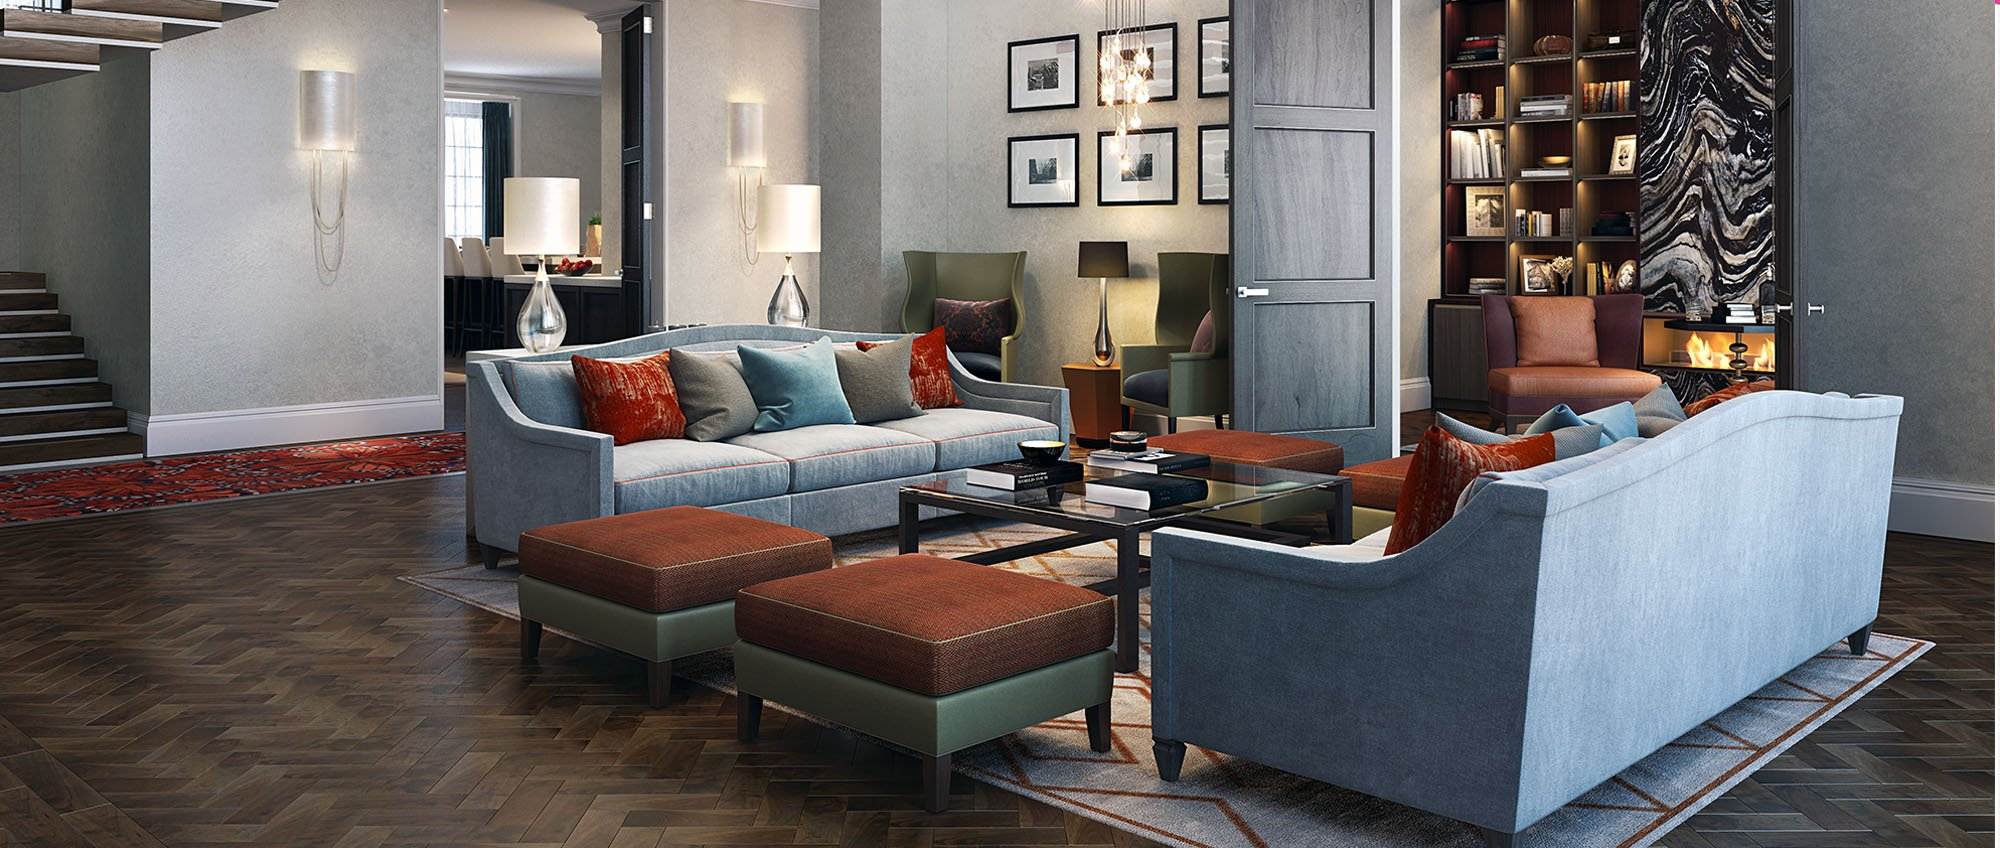 Linley Interior Visualisation by F10 Studios